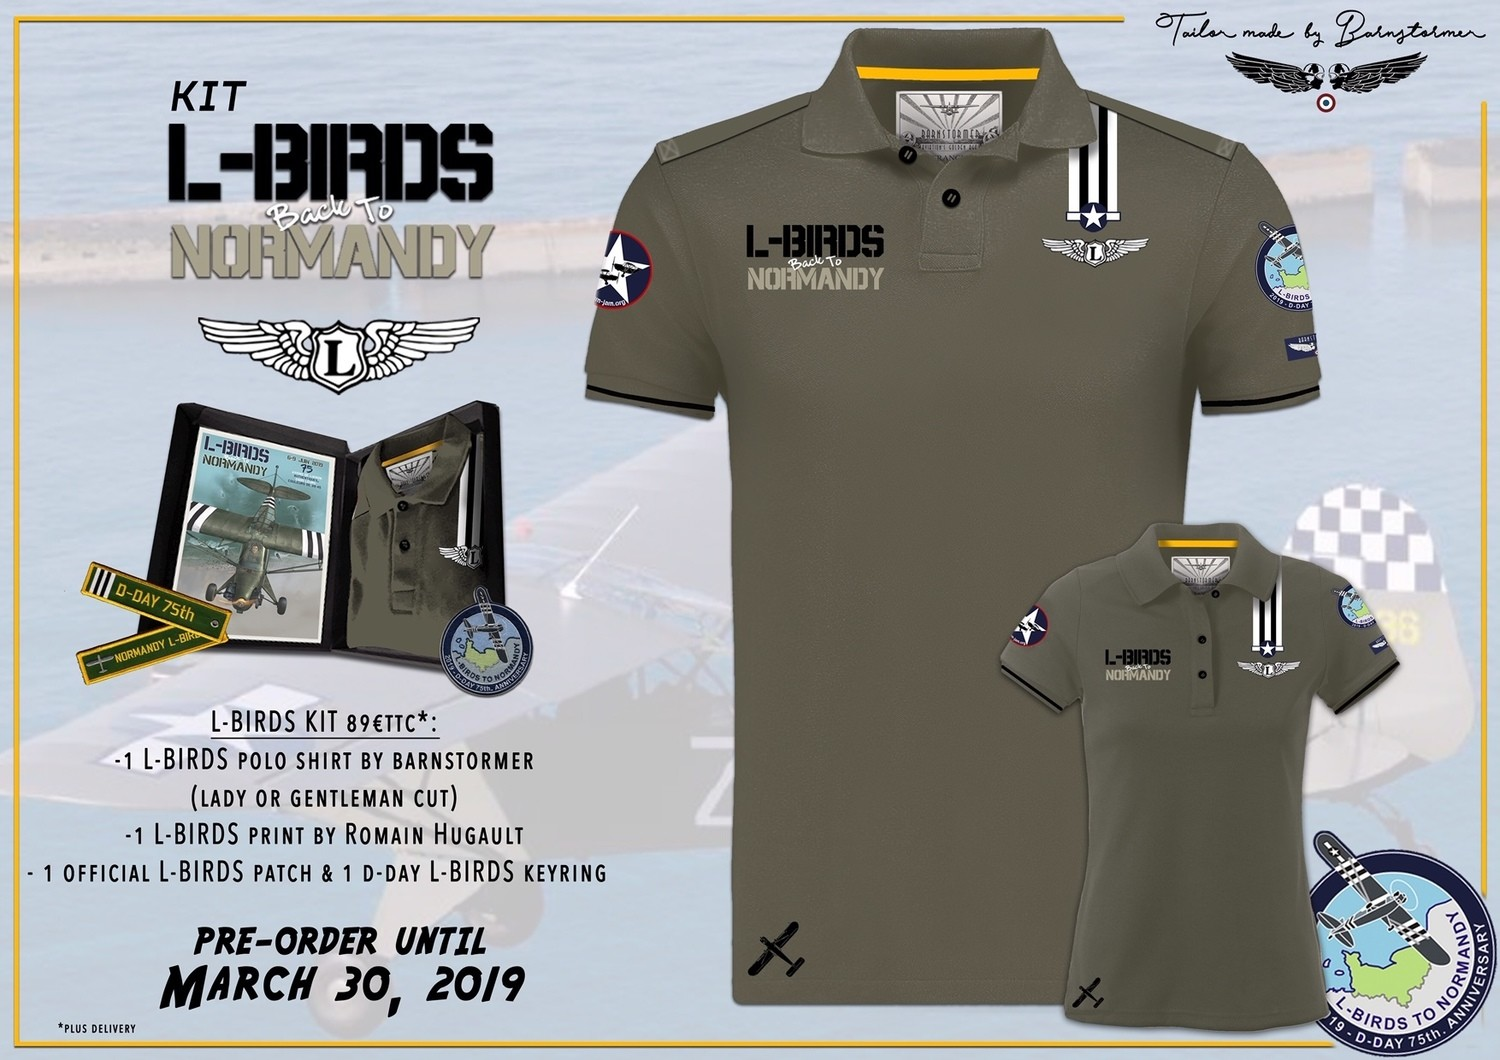 L-Birds Gift Box by Barnstormers © (English text)